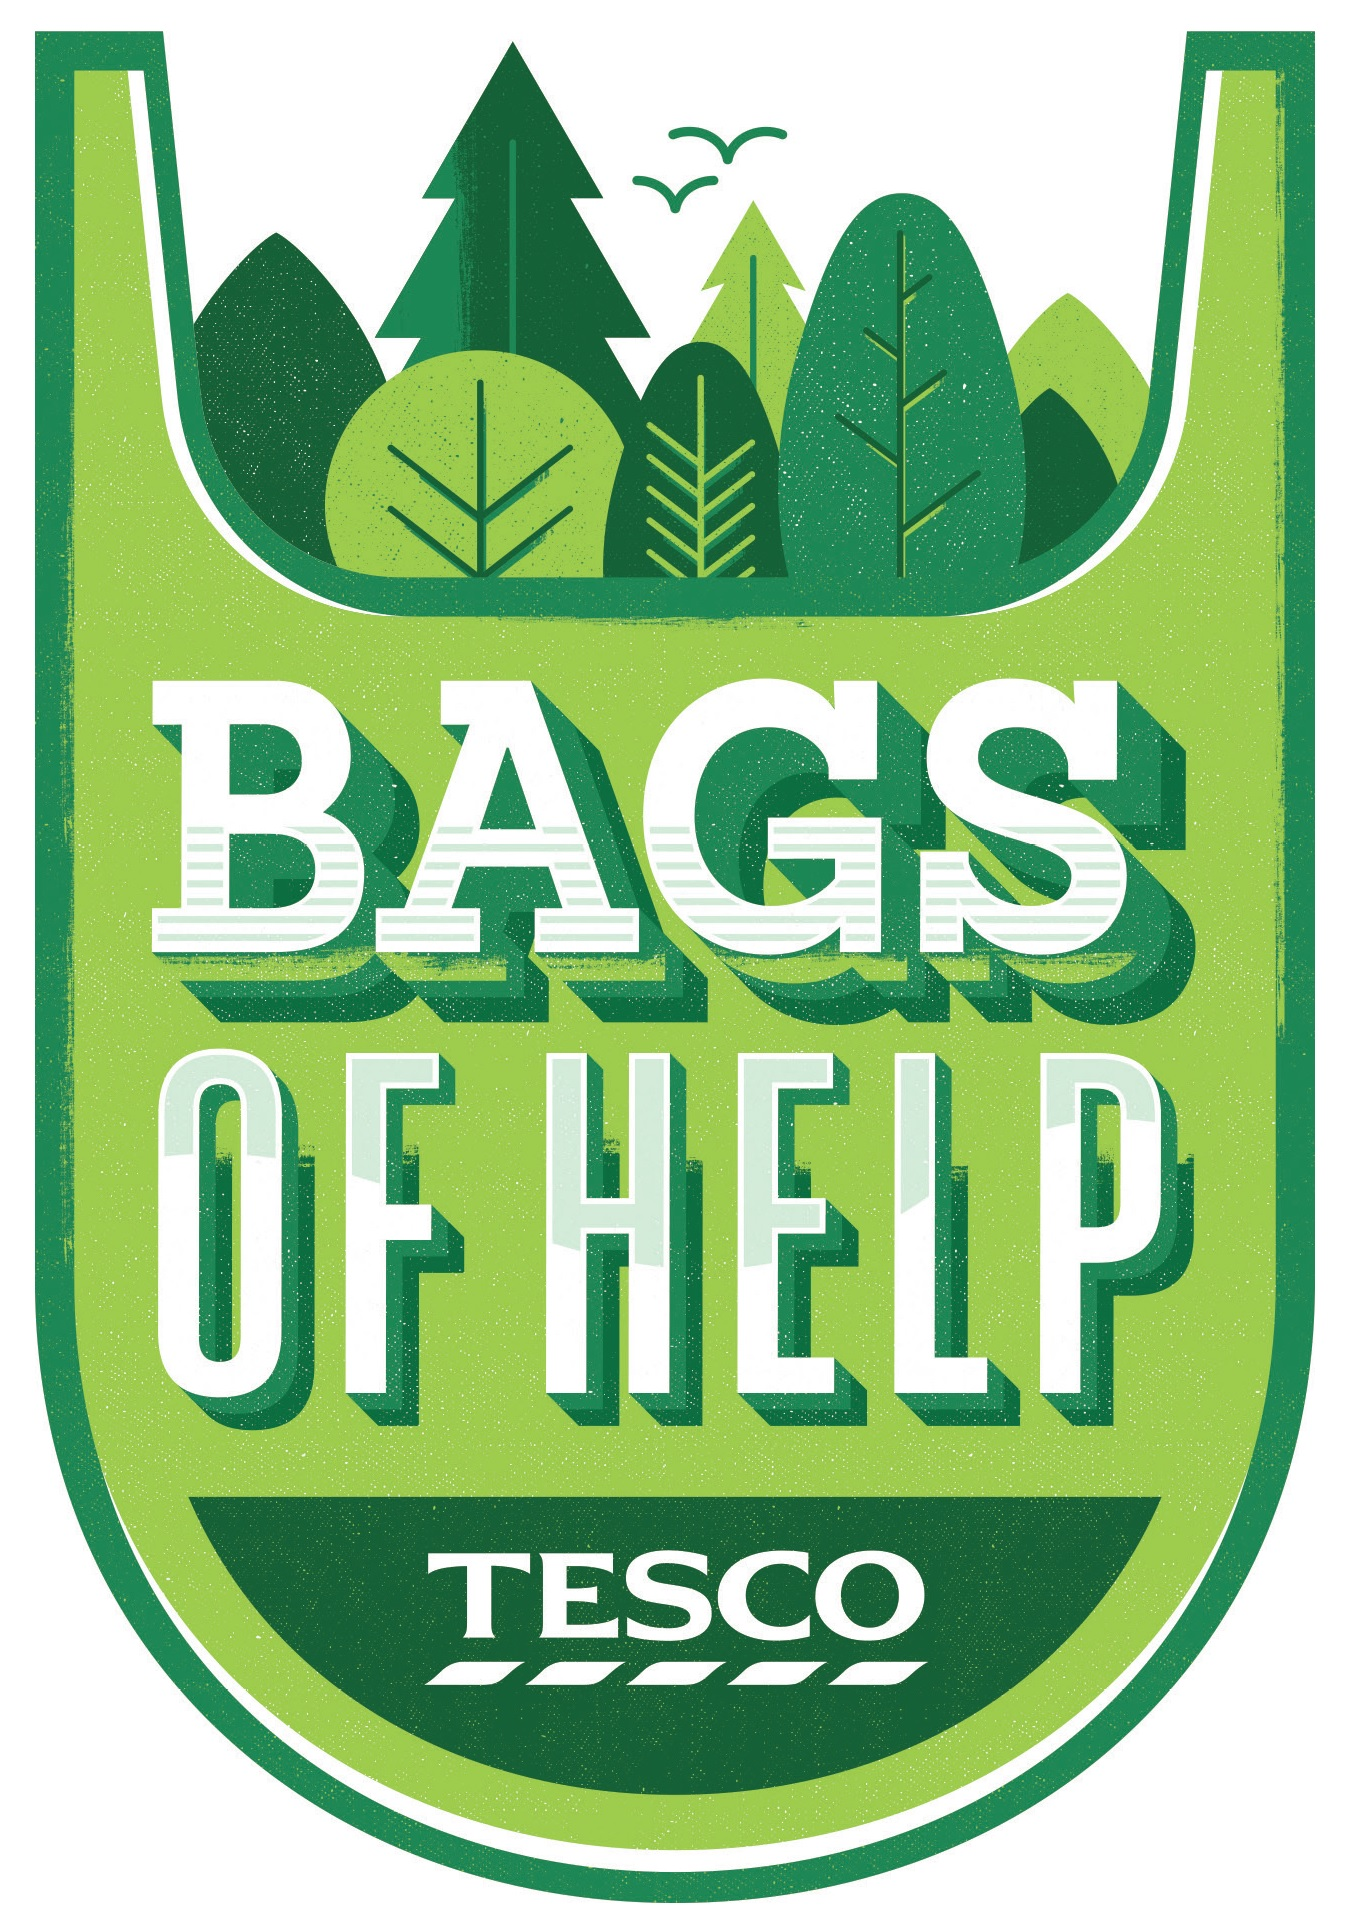 Vote for One Trust through Tesco Bags of Help